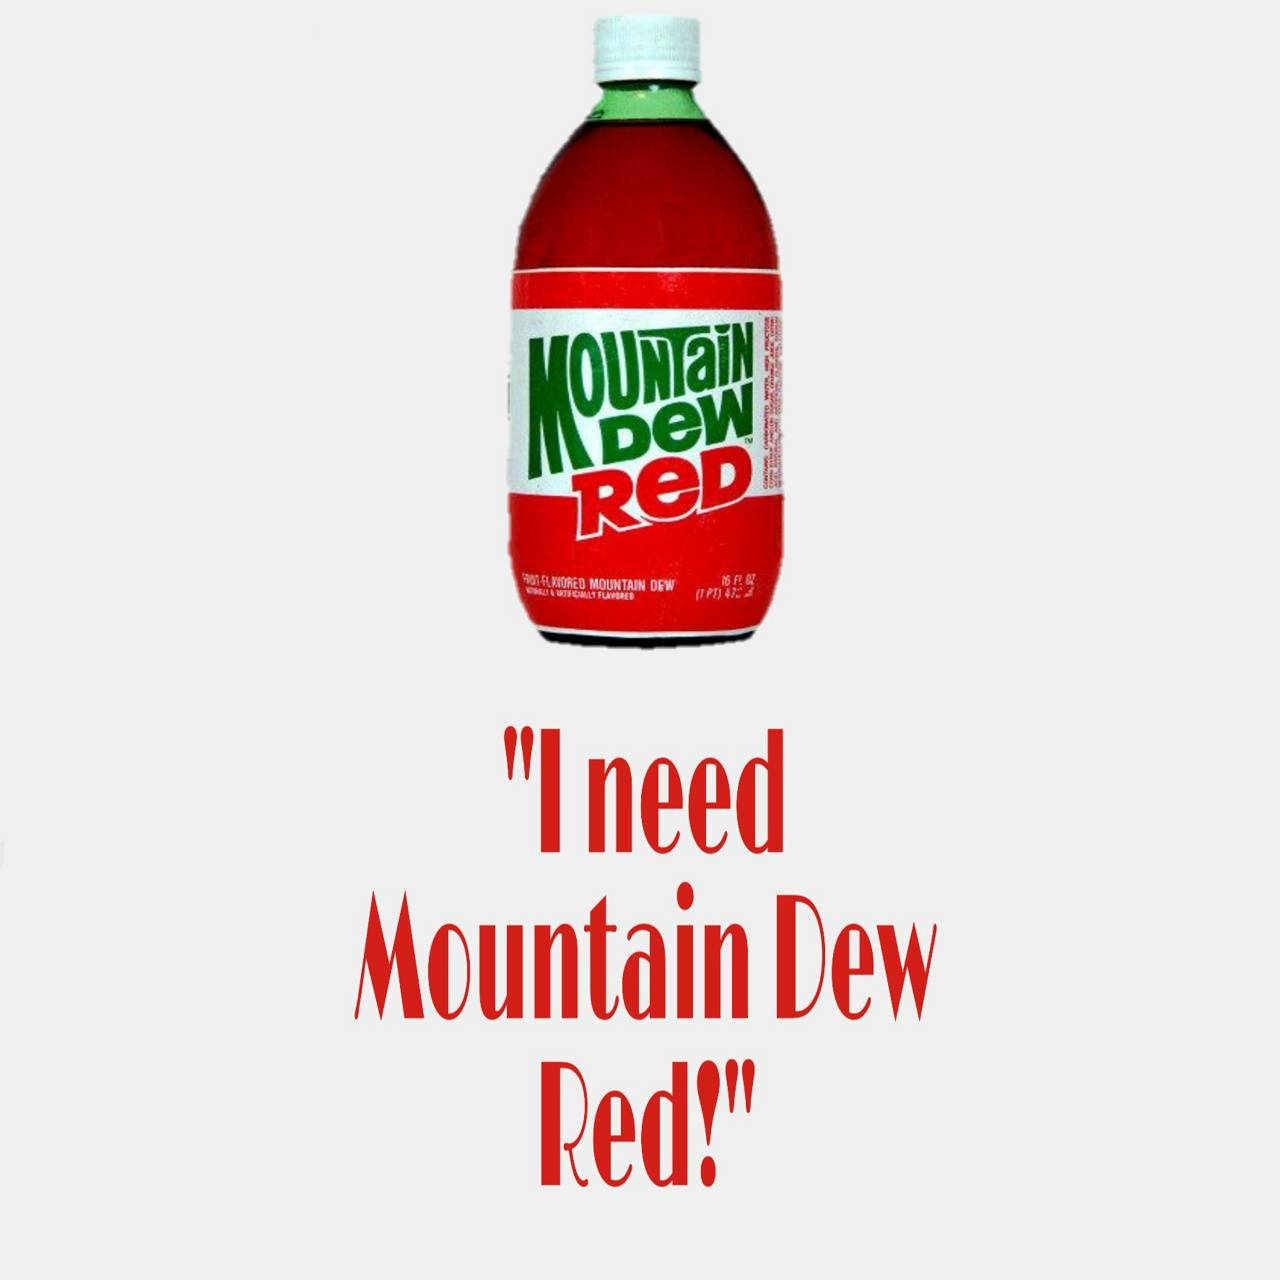 Moutain Dew Red